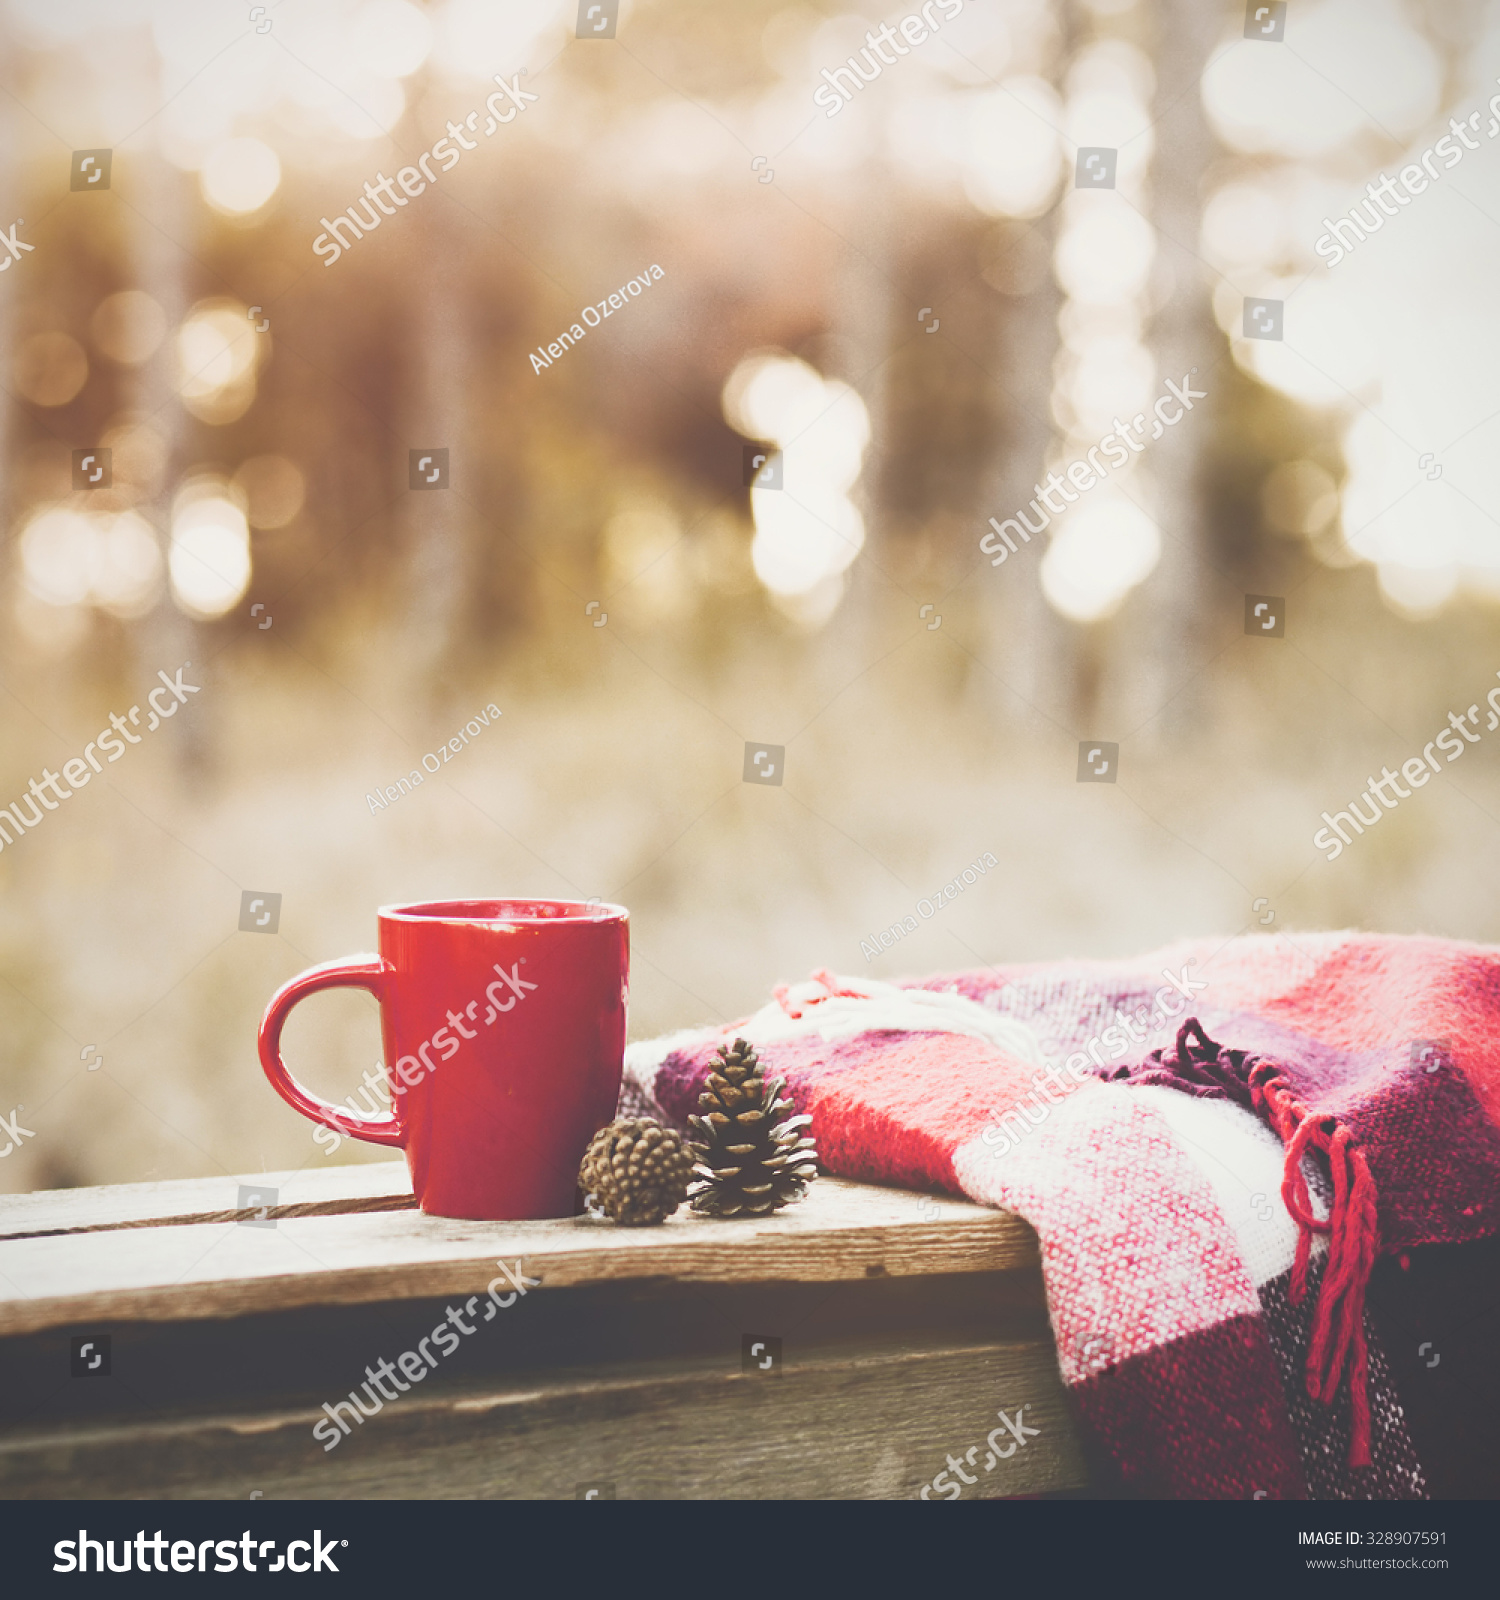 cup tea warm plaid blanket on stock photo shutterstock